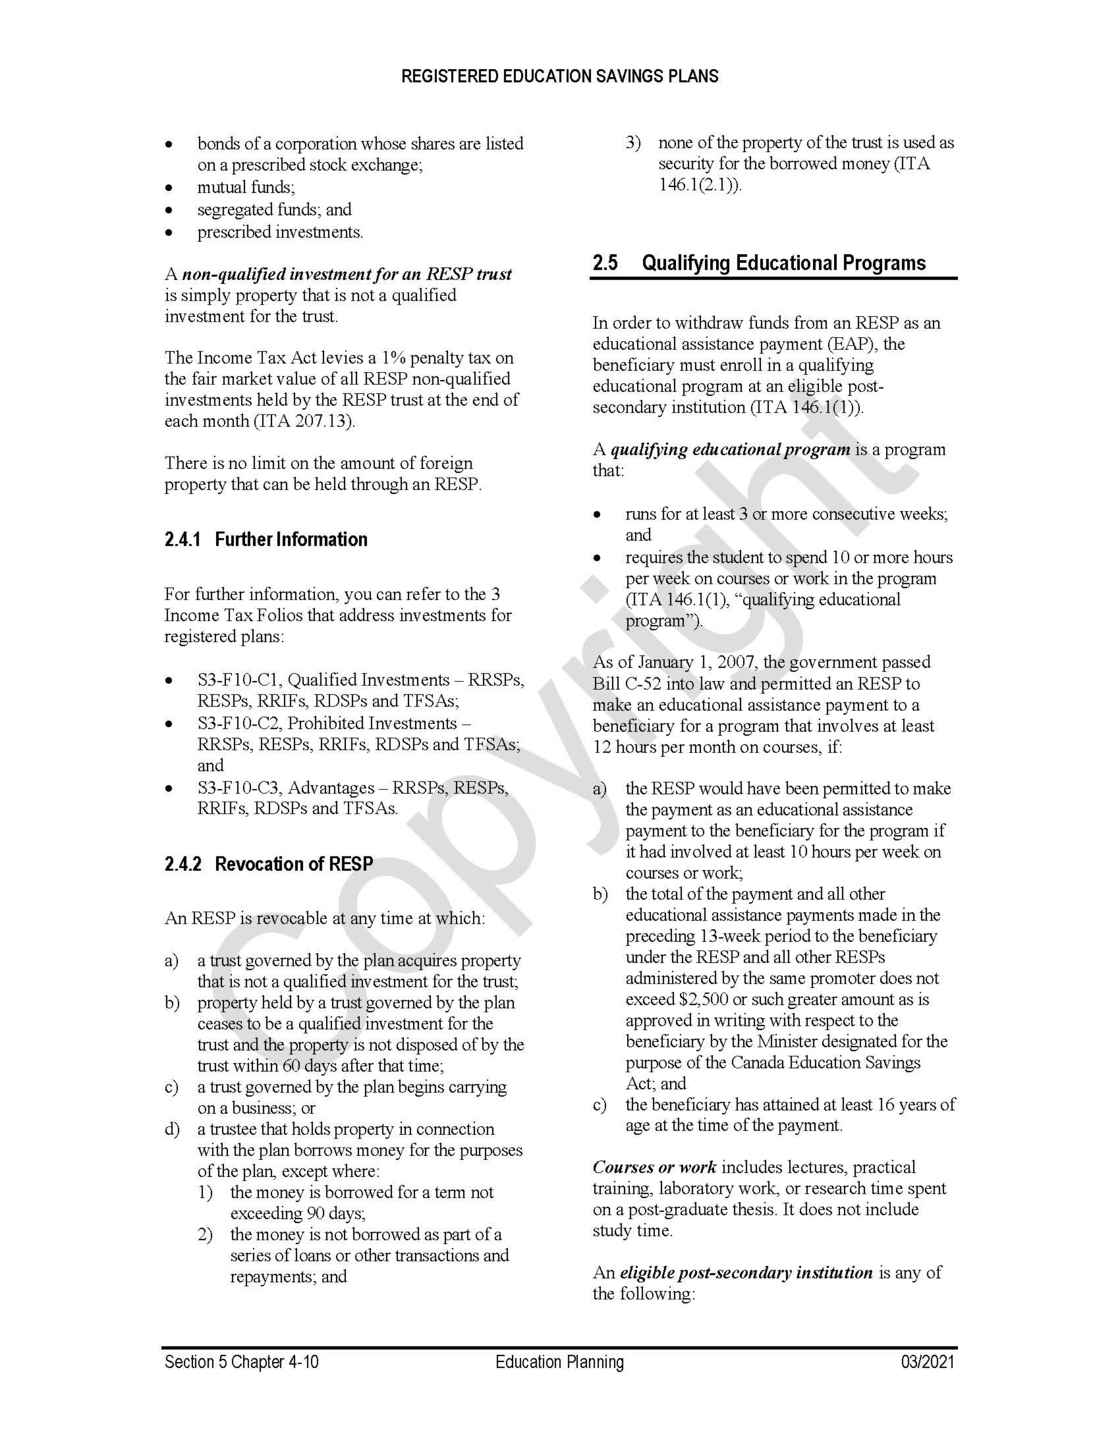 PFP 5-04 RESPs 104 Page_10